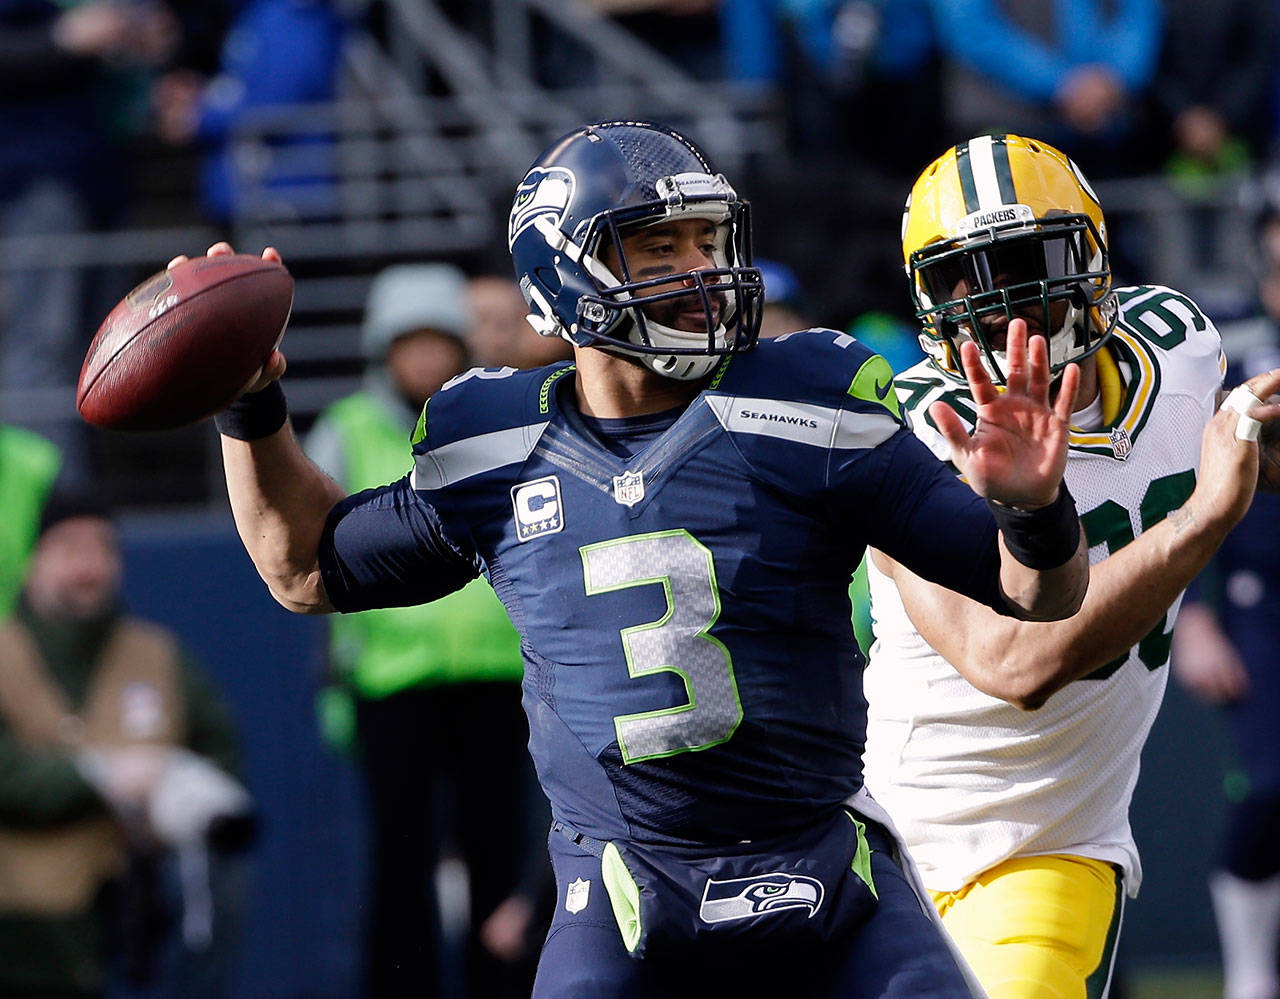 Seattle Seahawks quarterback Russell Wilson is now the highest-paid player in the NFL. (AP Photo/David J. Phillip)